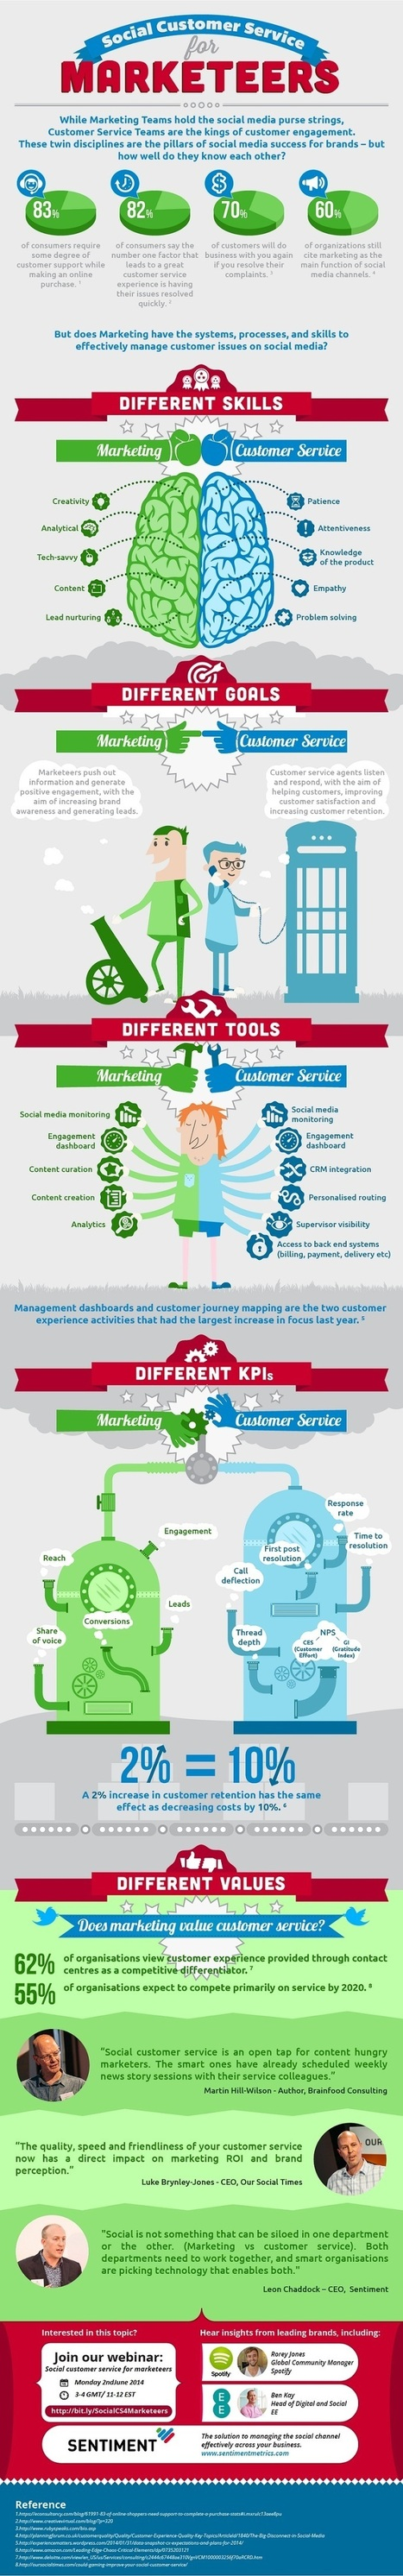 What Marketers Need to Know About Social Customer Service [Infographic] | infographics | Scoop.it